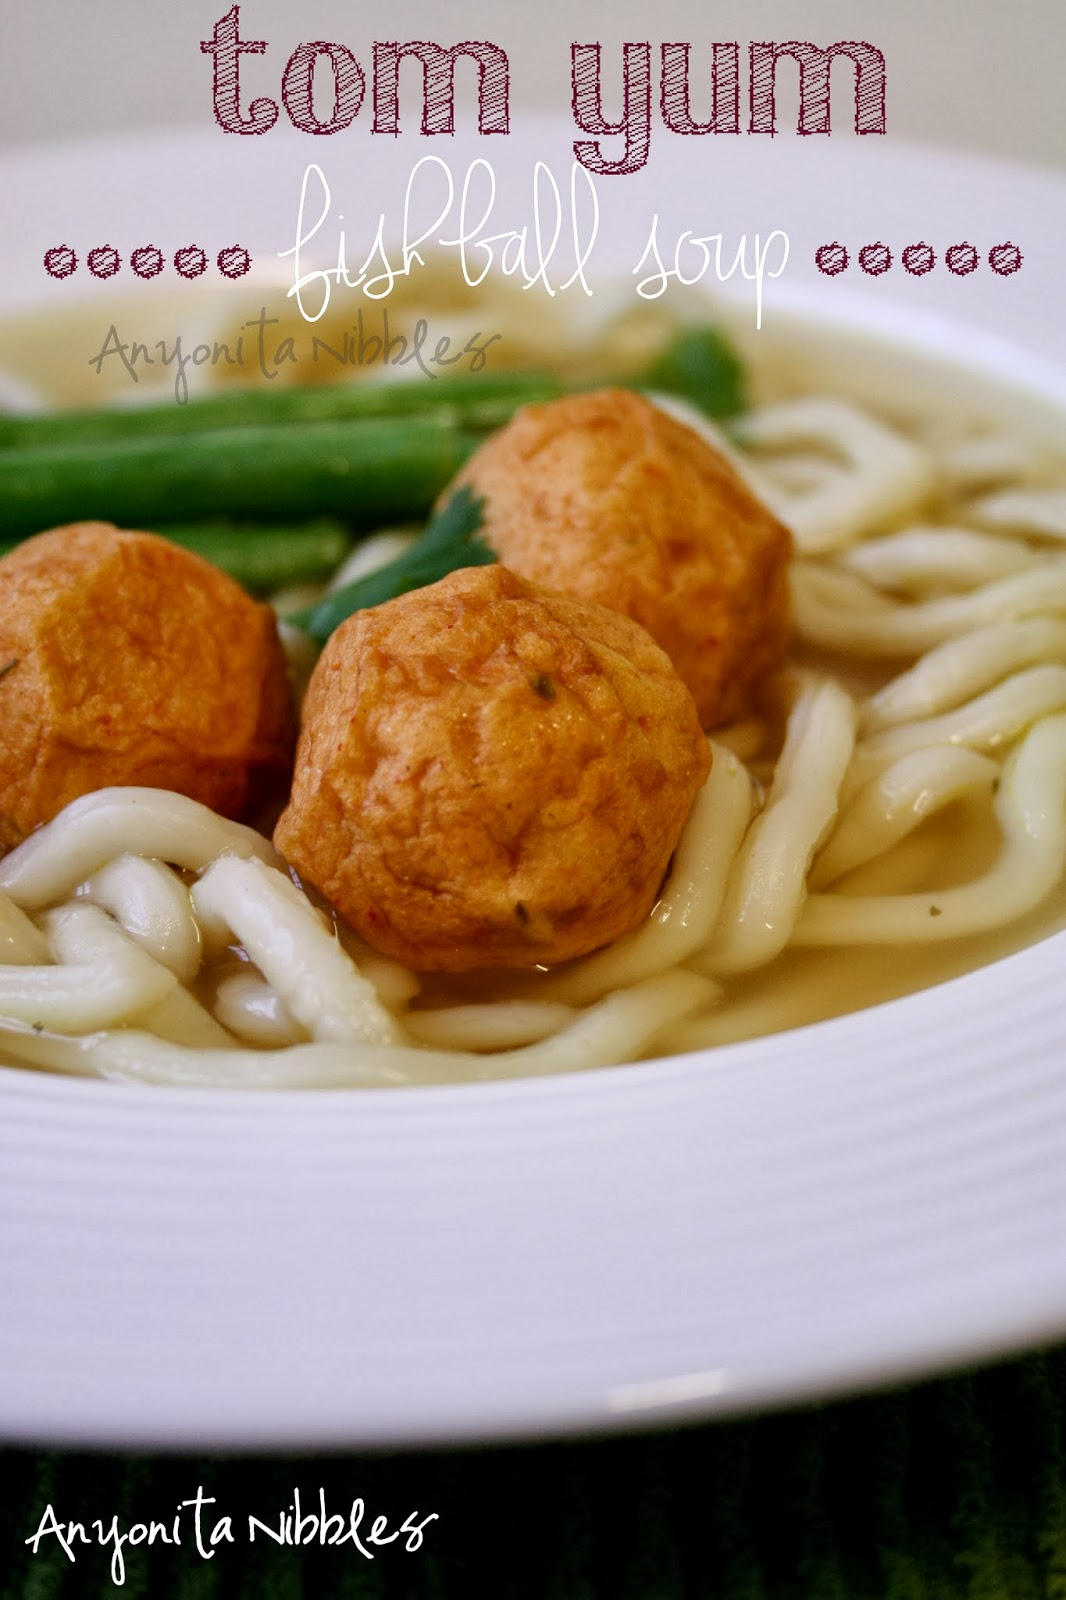 Tom Yum Fish Ball Noodle Soup ready in 10 minutes